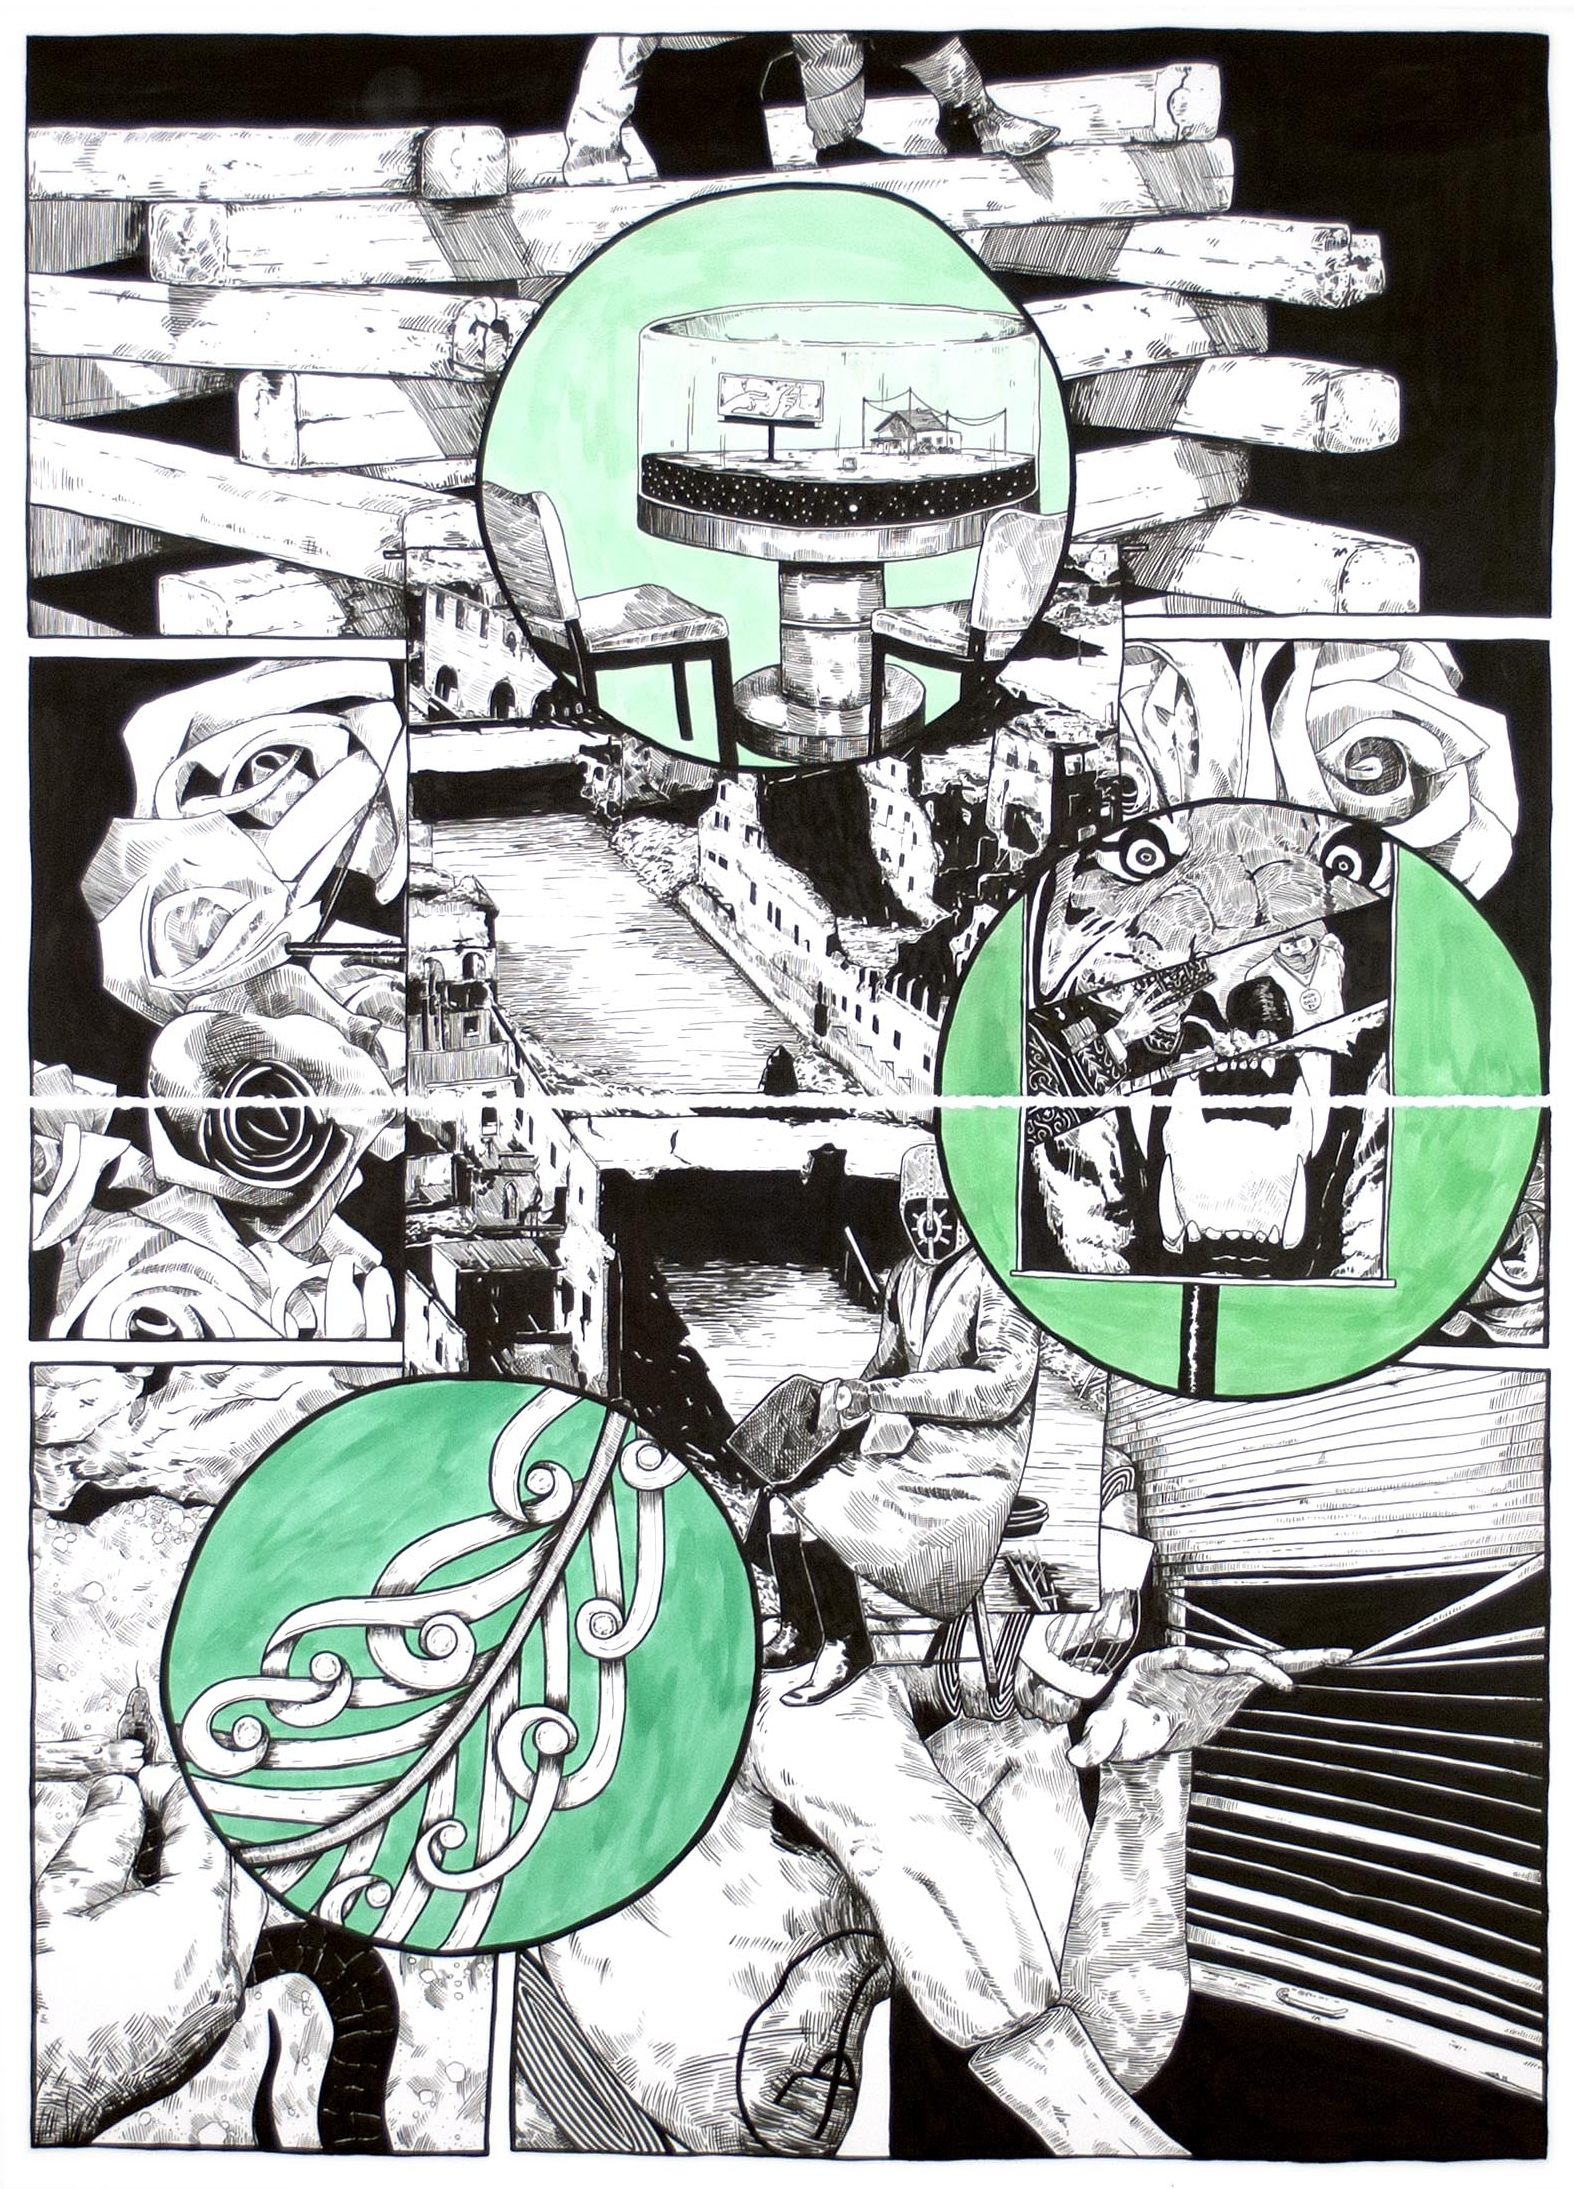 Lower Than the Lowest Animal #6 , 2014 India ink on paper 60 x 44 inches (diptych)